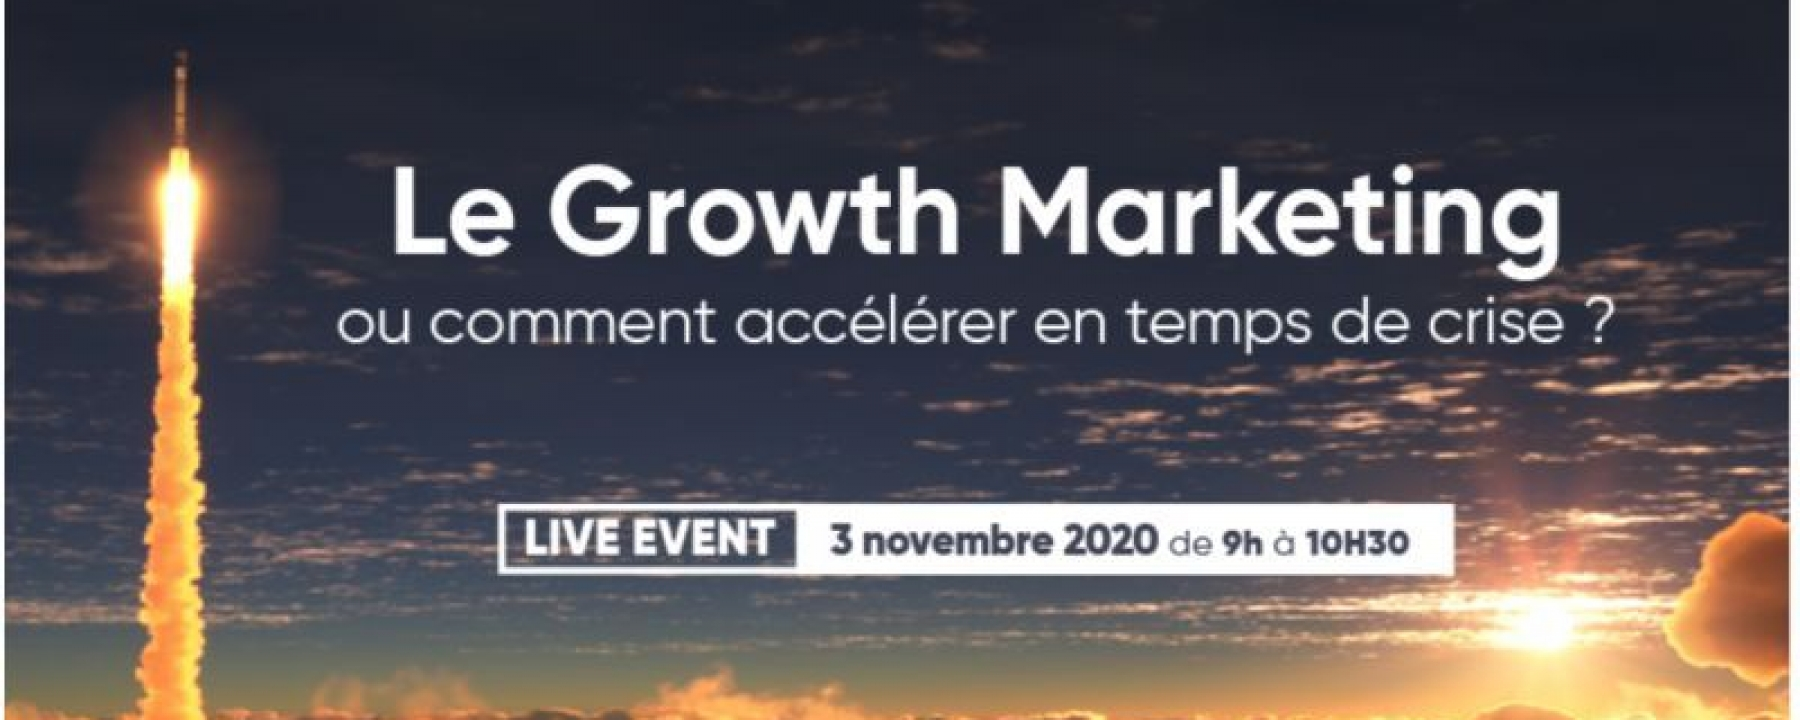 Comment accélérer en temps de crise : le Growth Marketing, webinar organisé par Dixer le 3 novembre 2020